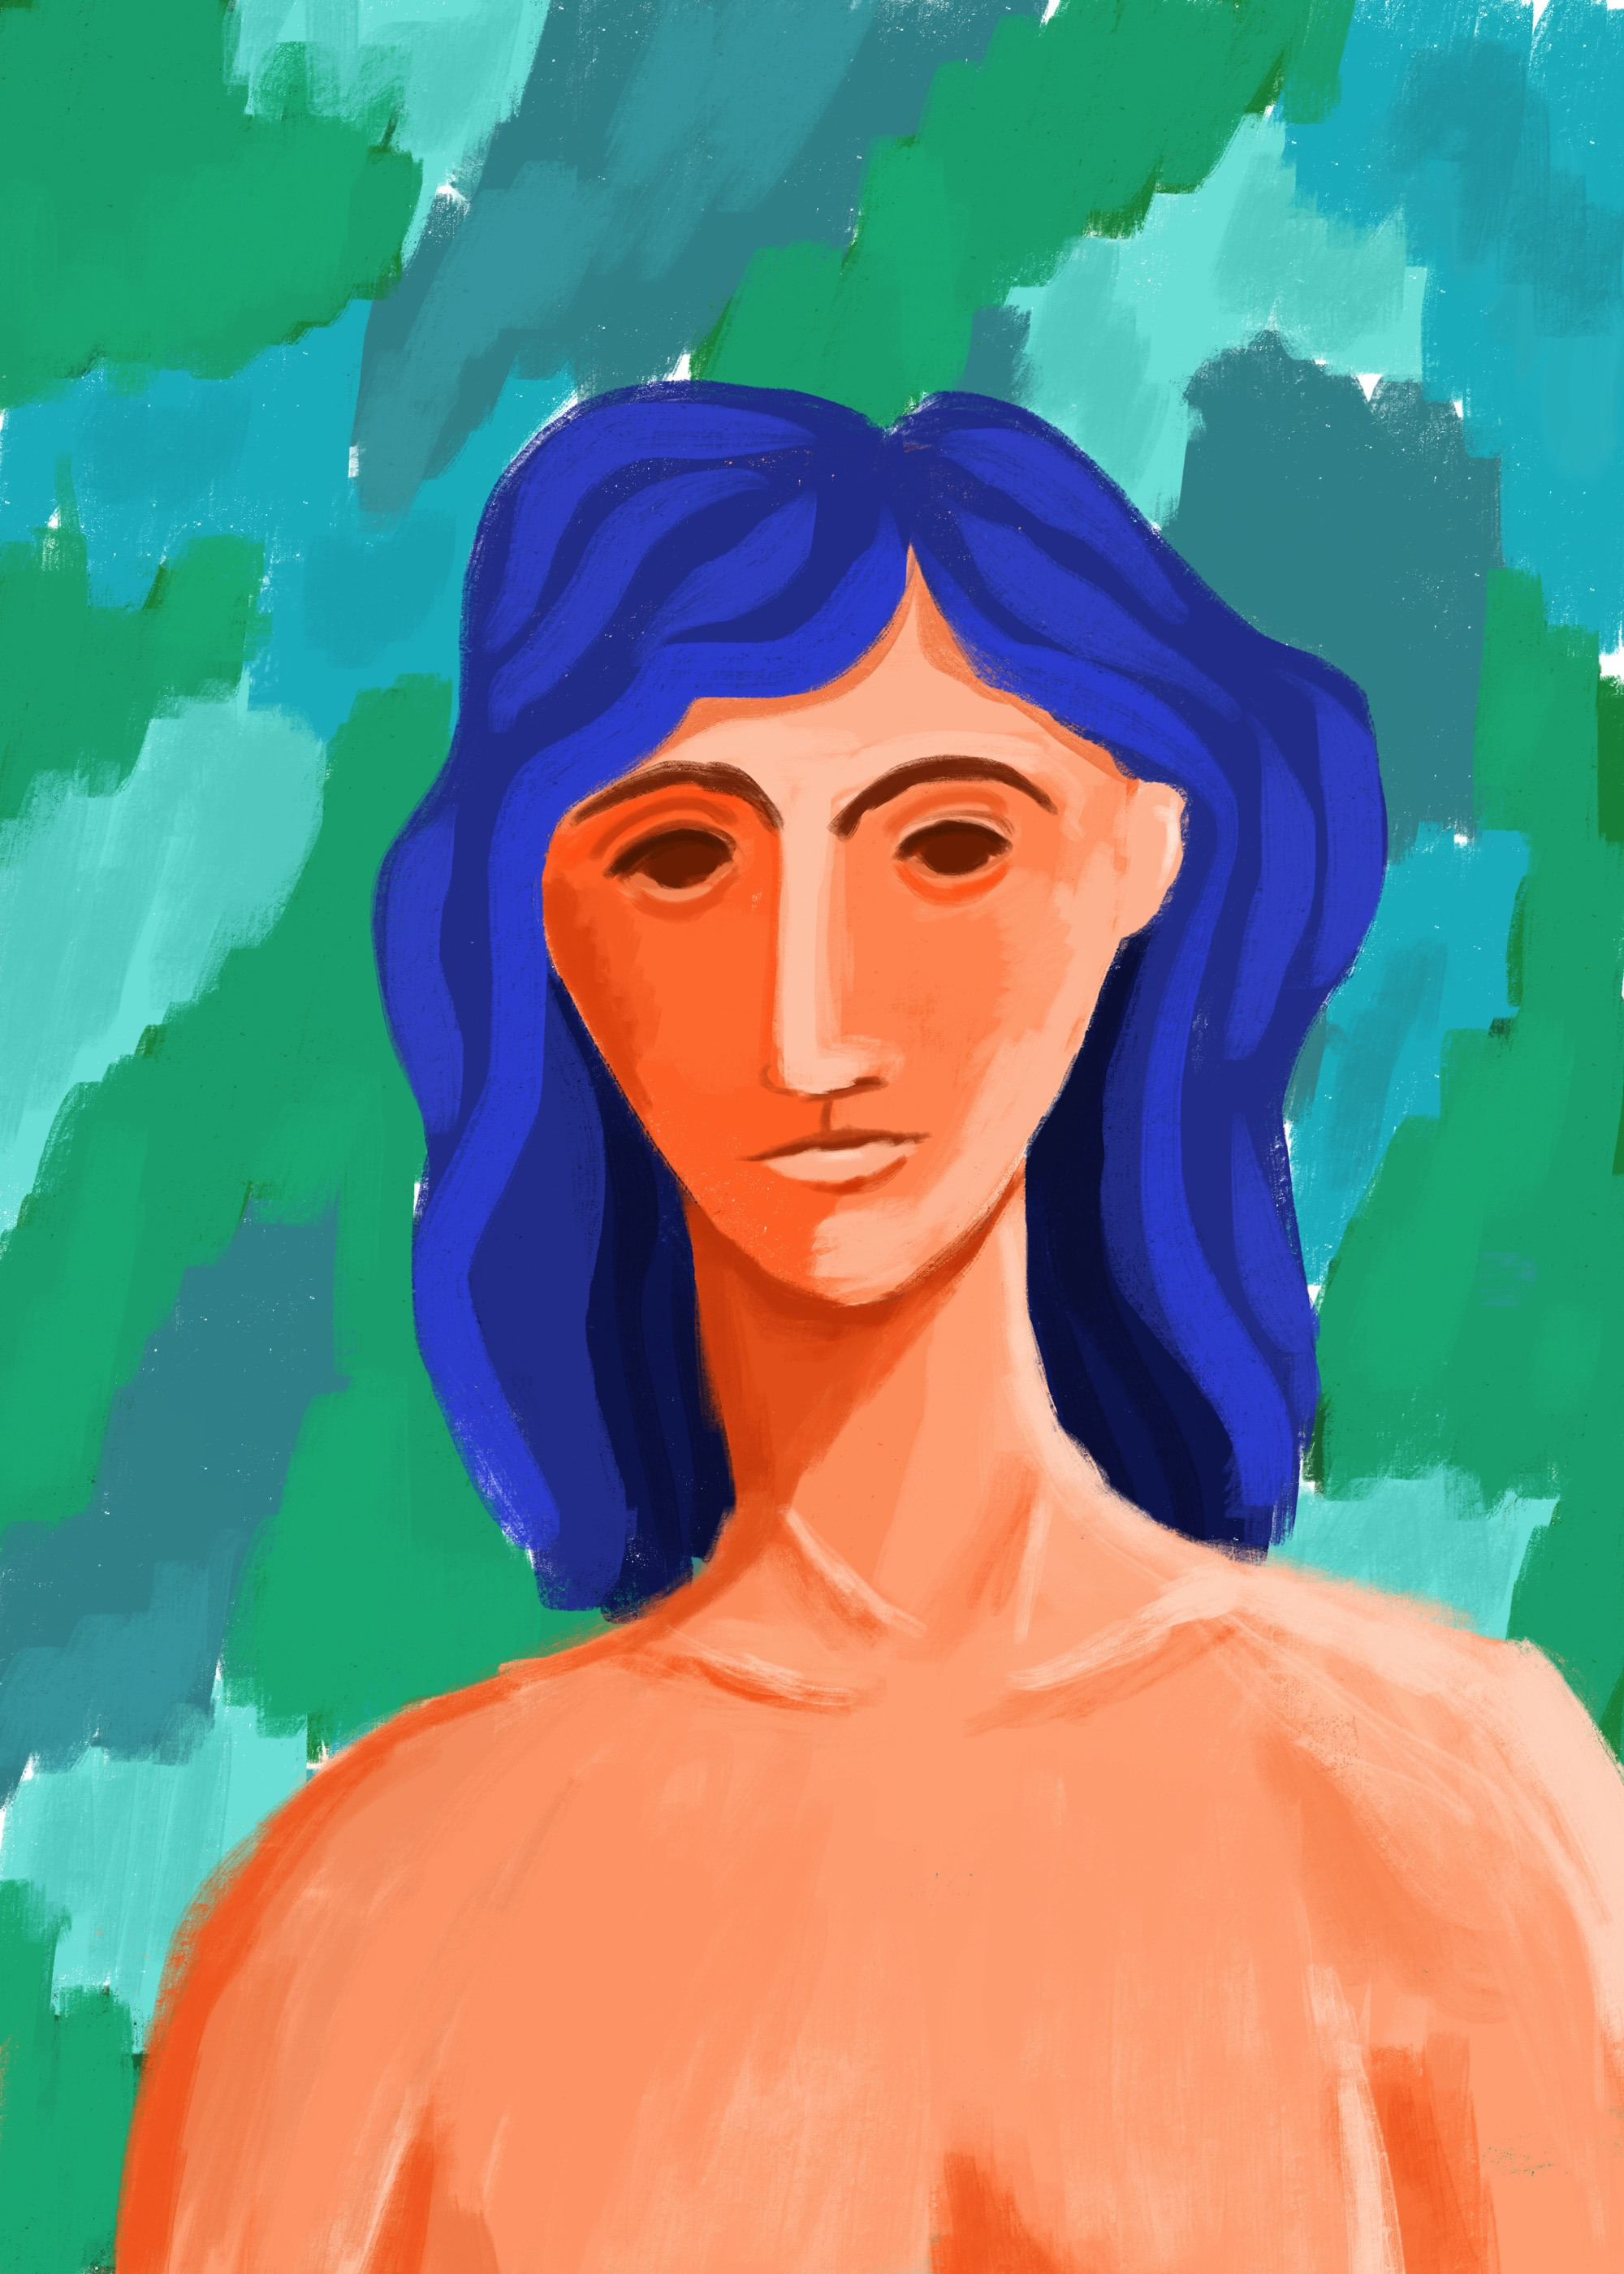 Blue haired woman by Lisa Bardot